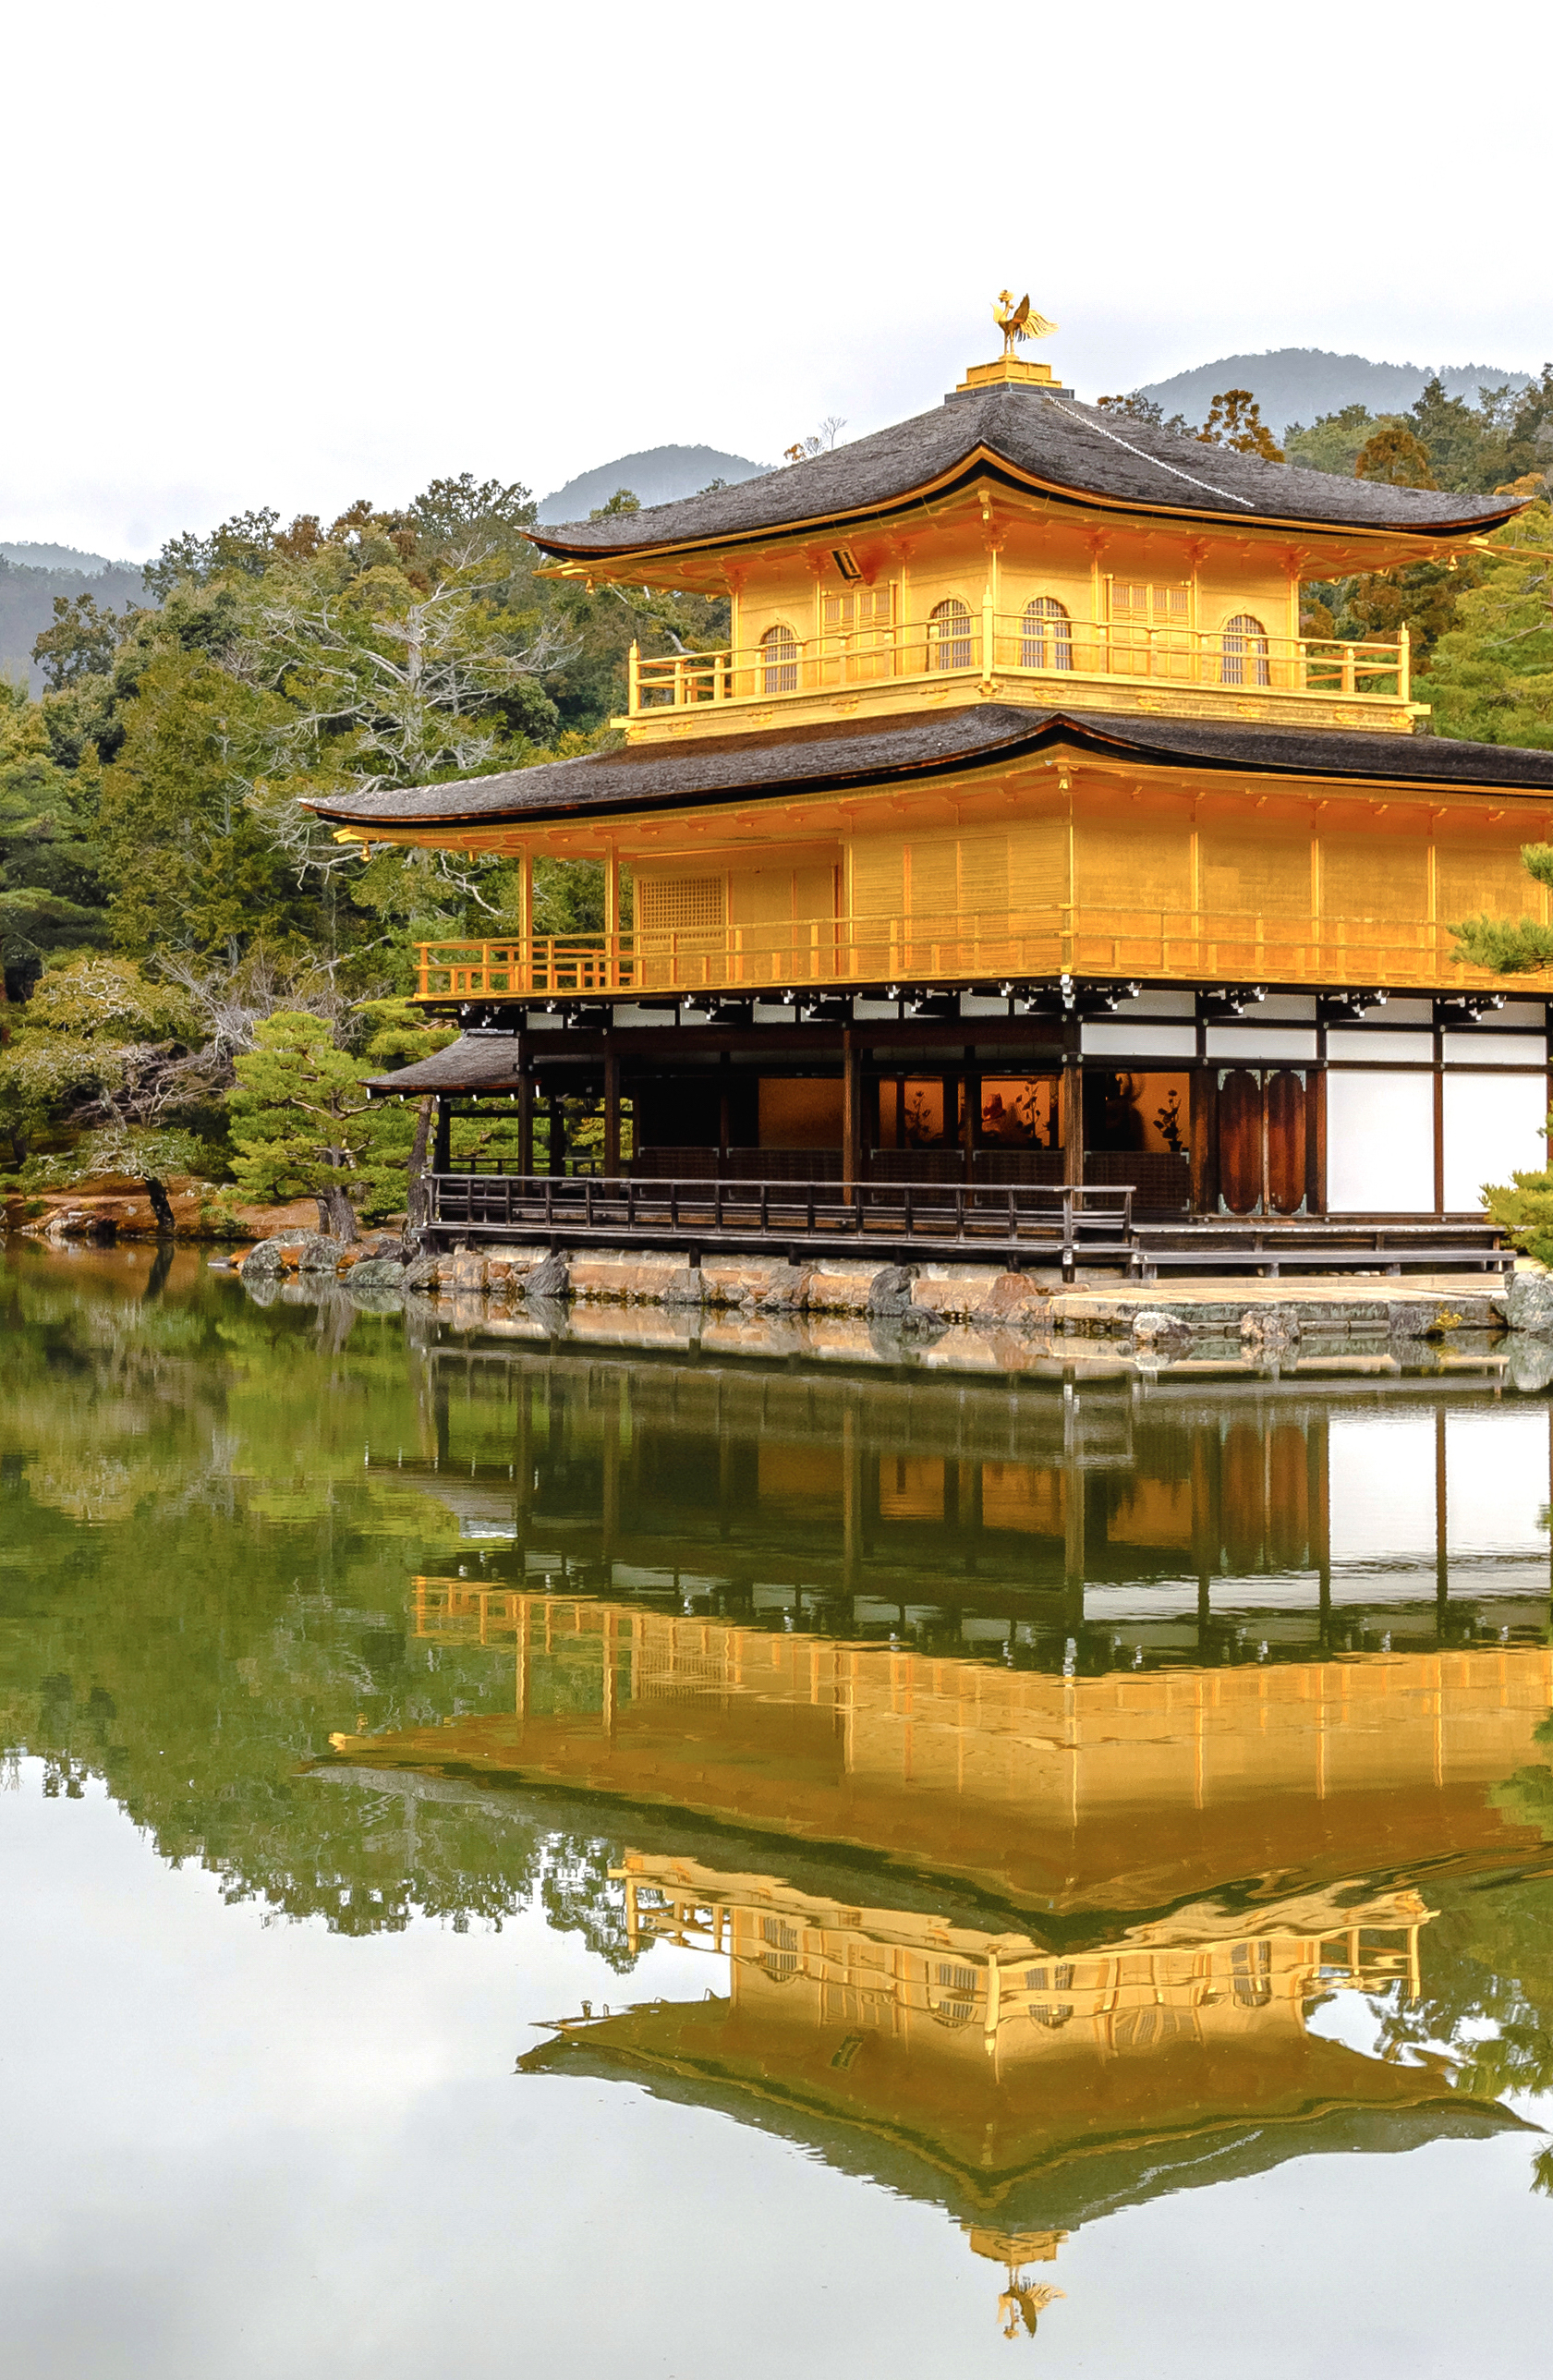 The Golden Pavilion- Kyoto's Most Precious Temple